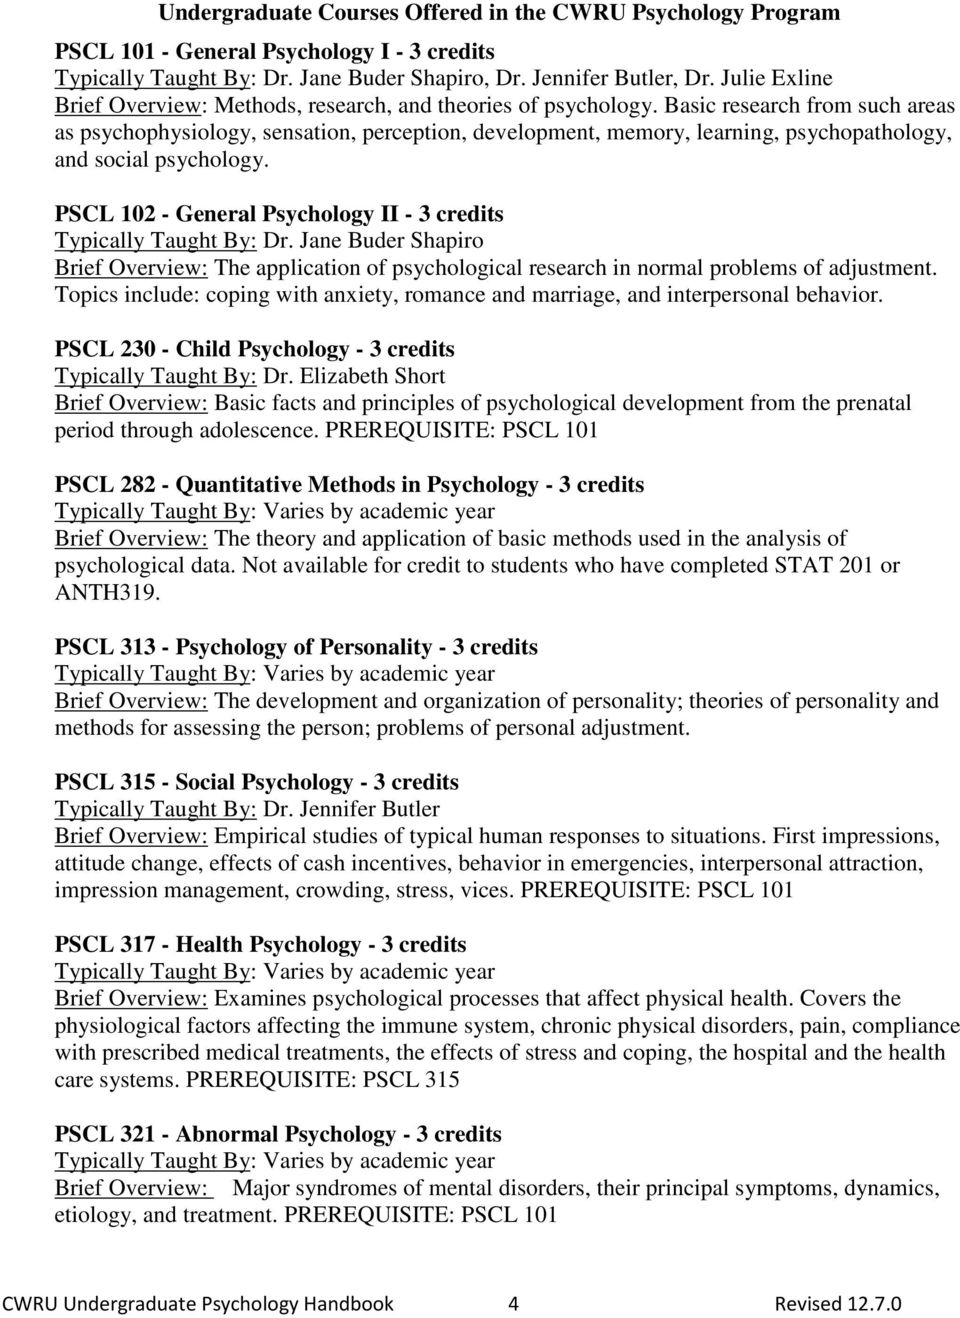 Basic research from such areas as psychophysiology, sensation, perception, development, memory, learning, psychopathology, and social psychology.